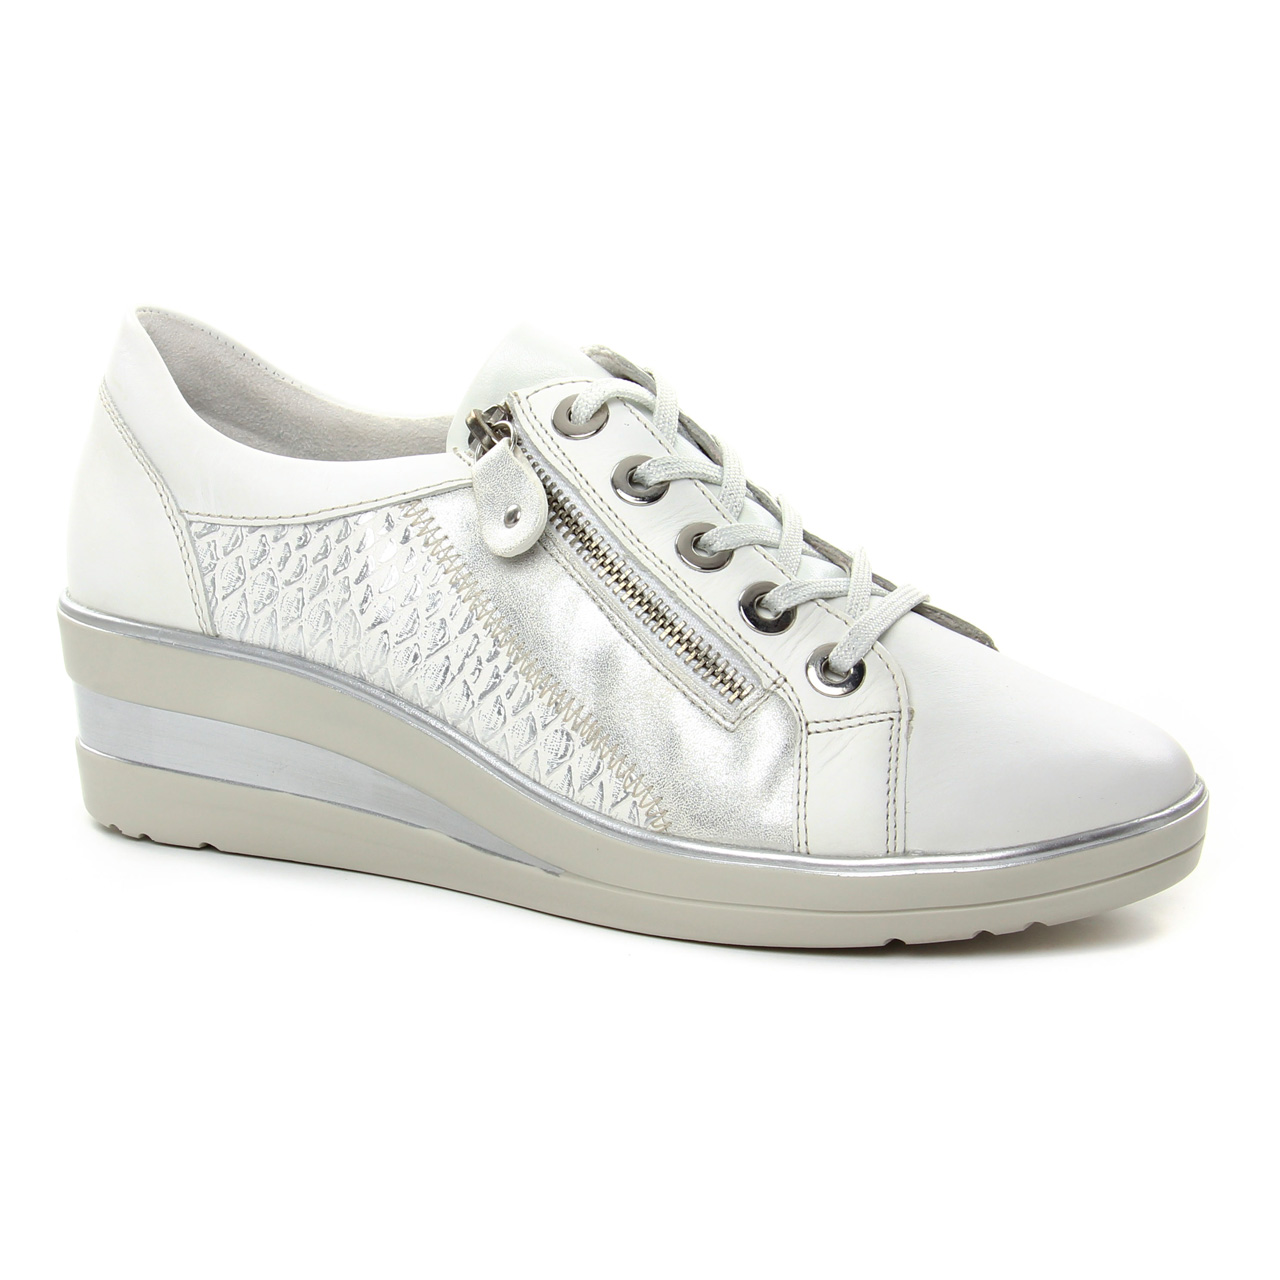 Chaussures Remonte Femme R7ayf affutage Blanches Nut 11qdwrP